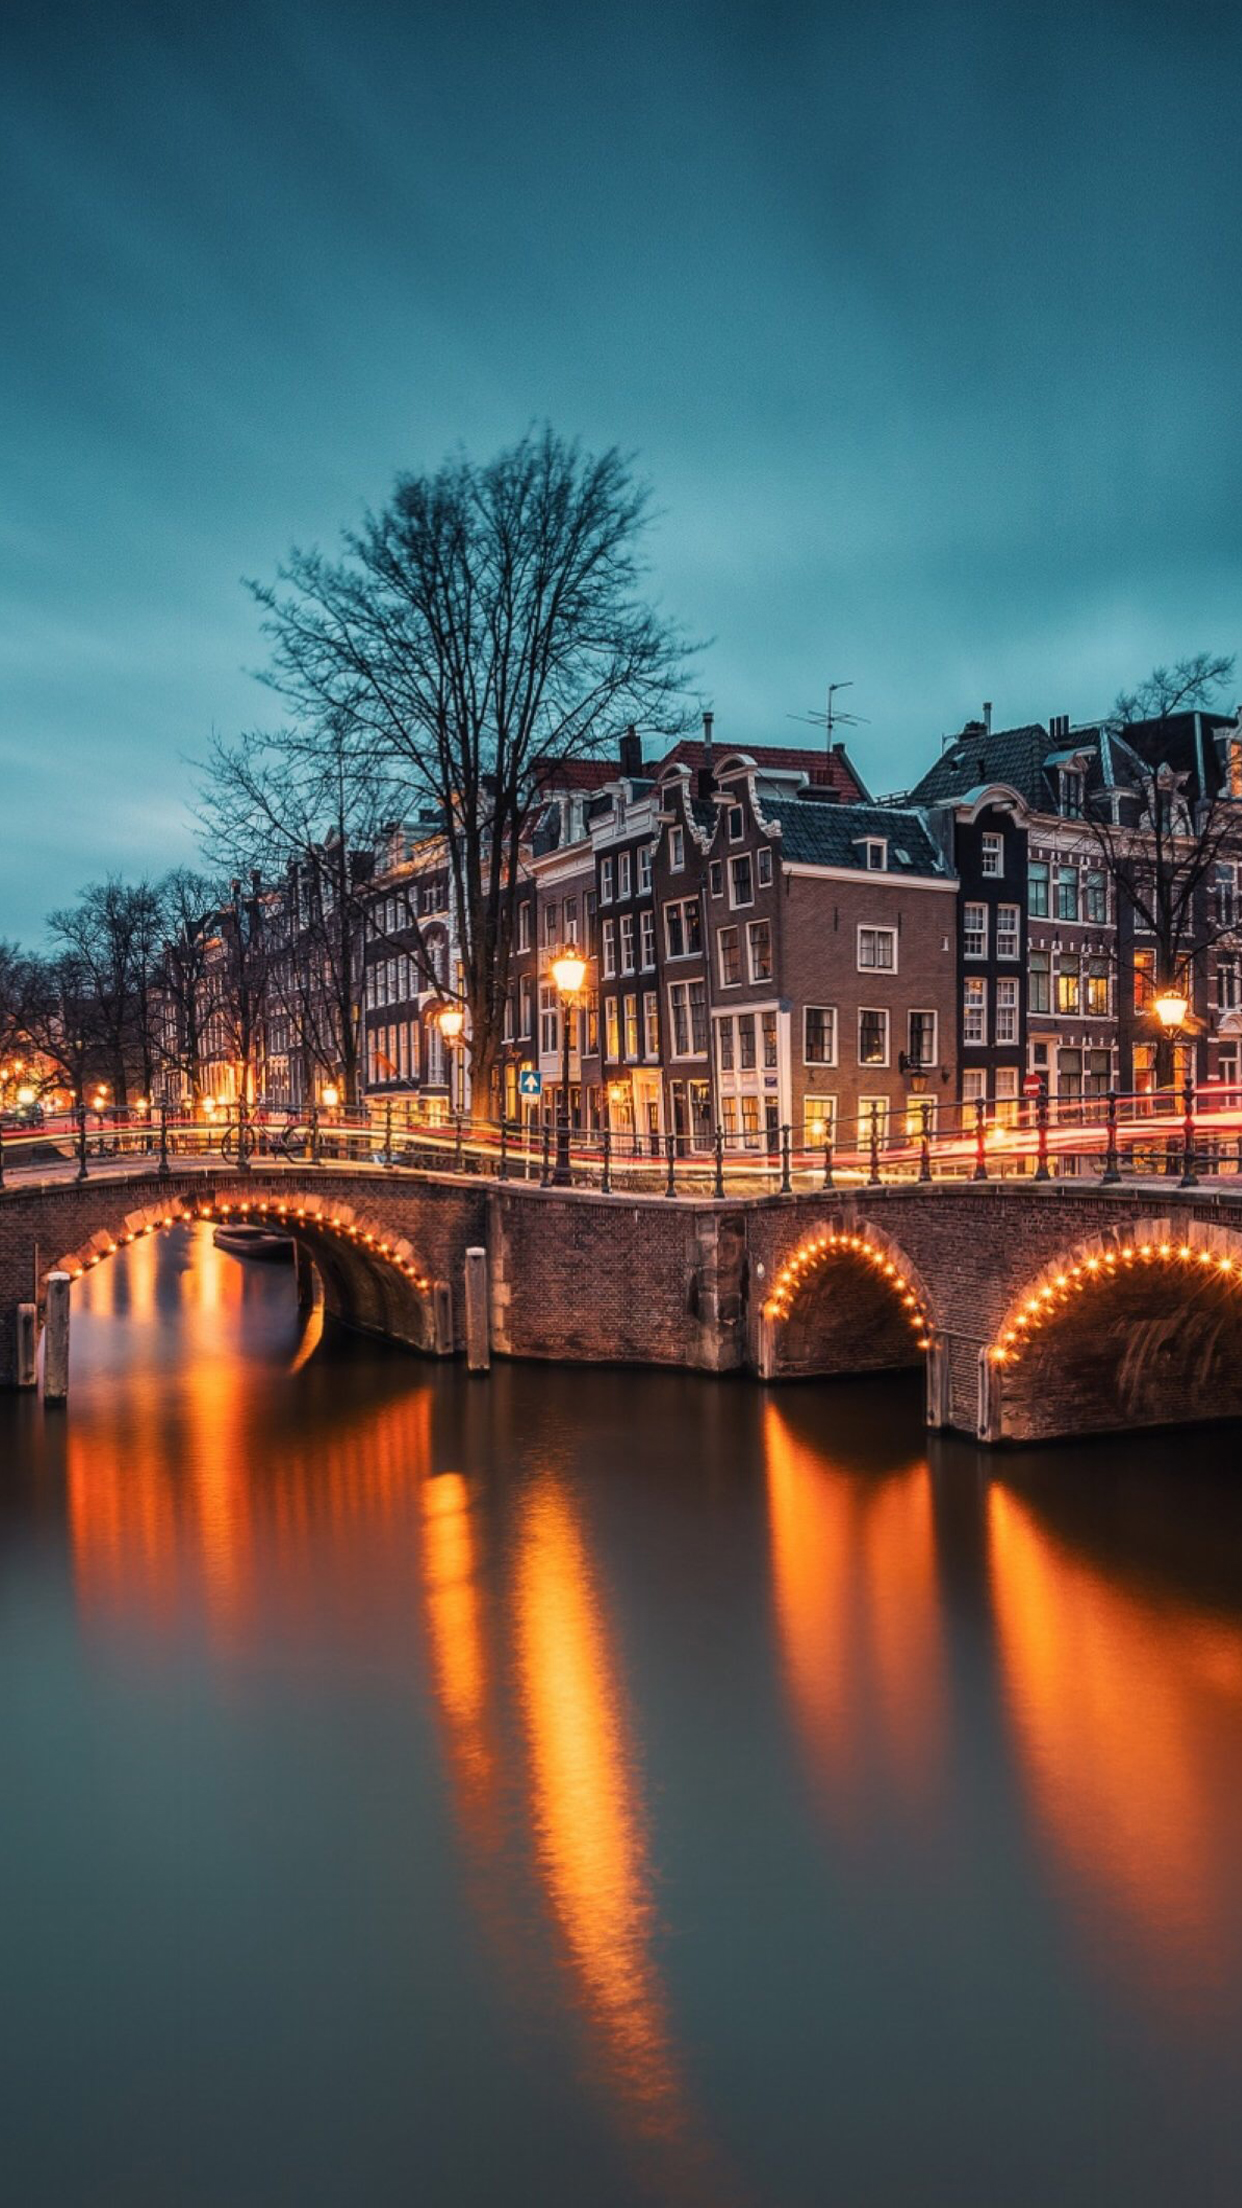 Wallpaper For Iphone 4s Black Amsterdam 2 Wallpaper For Iphone X 8 7 6 Free